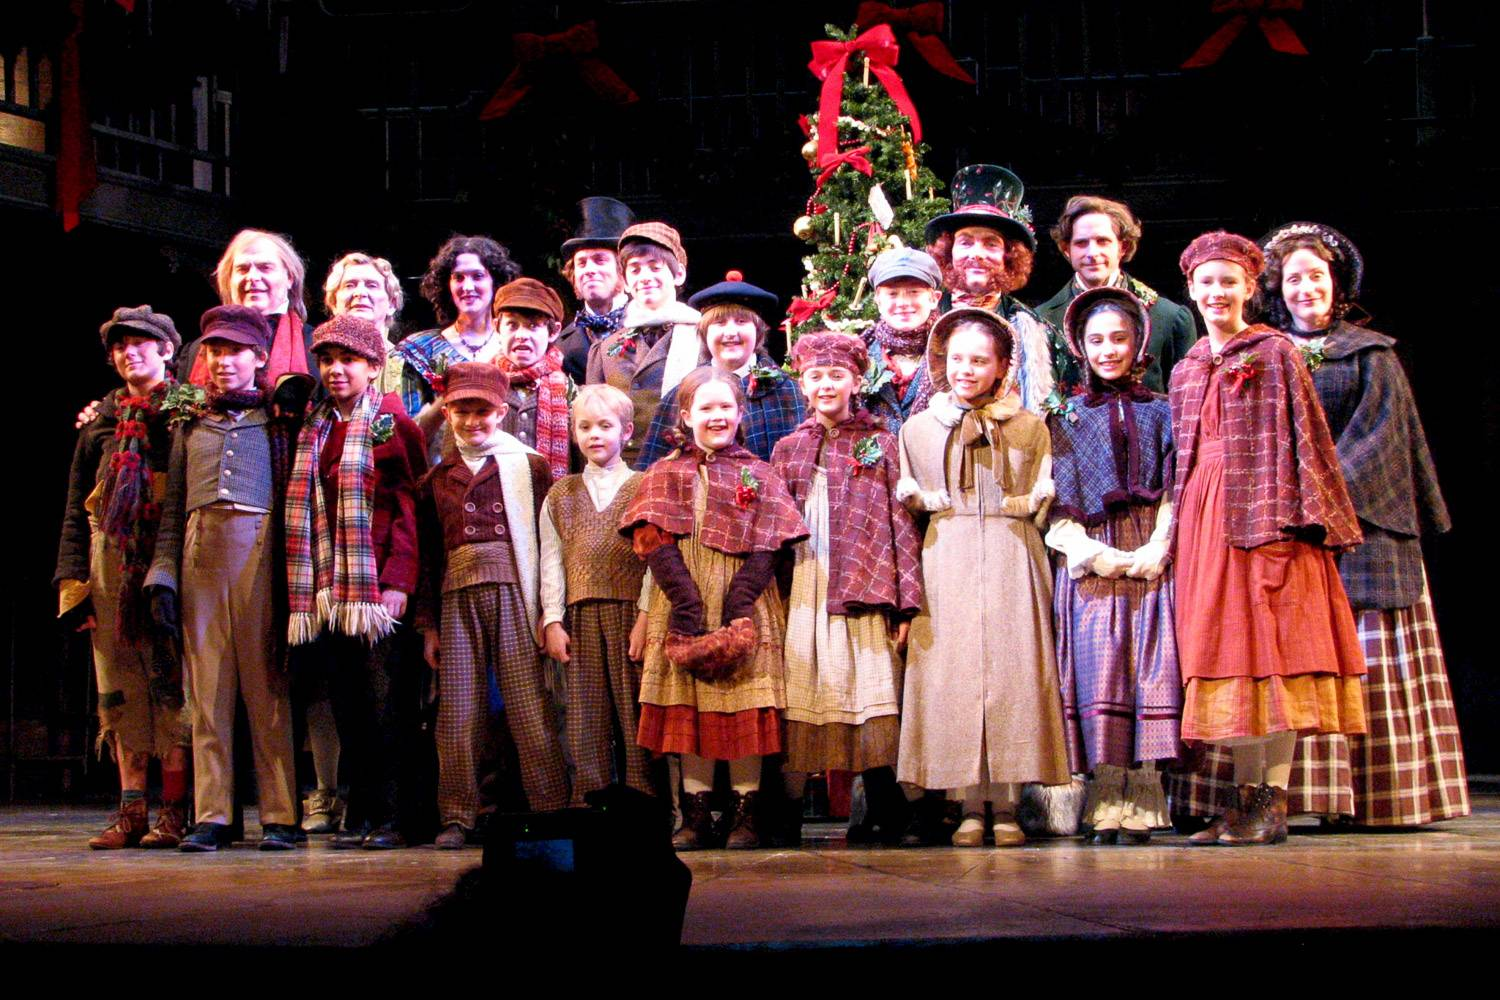 An image of a group of actors performing A Christmas Carol.